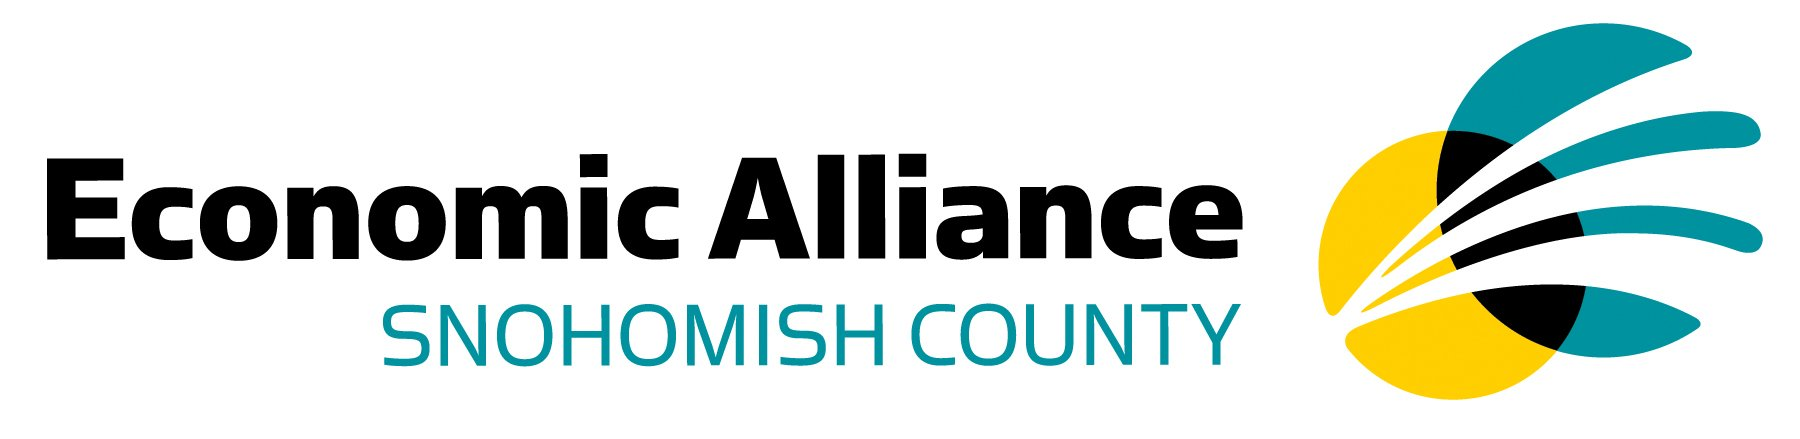 economic alliance of snohomish county